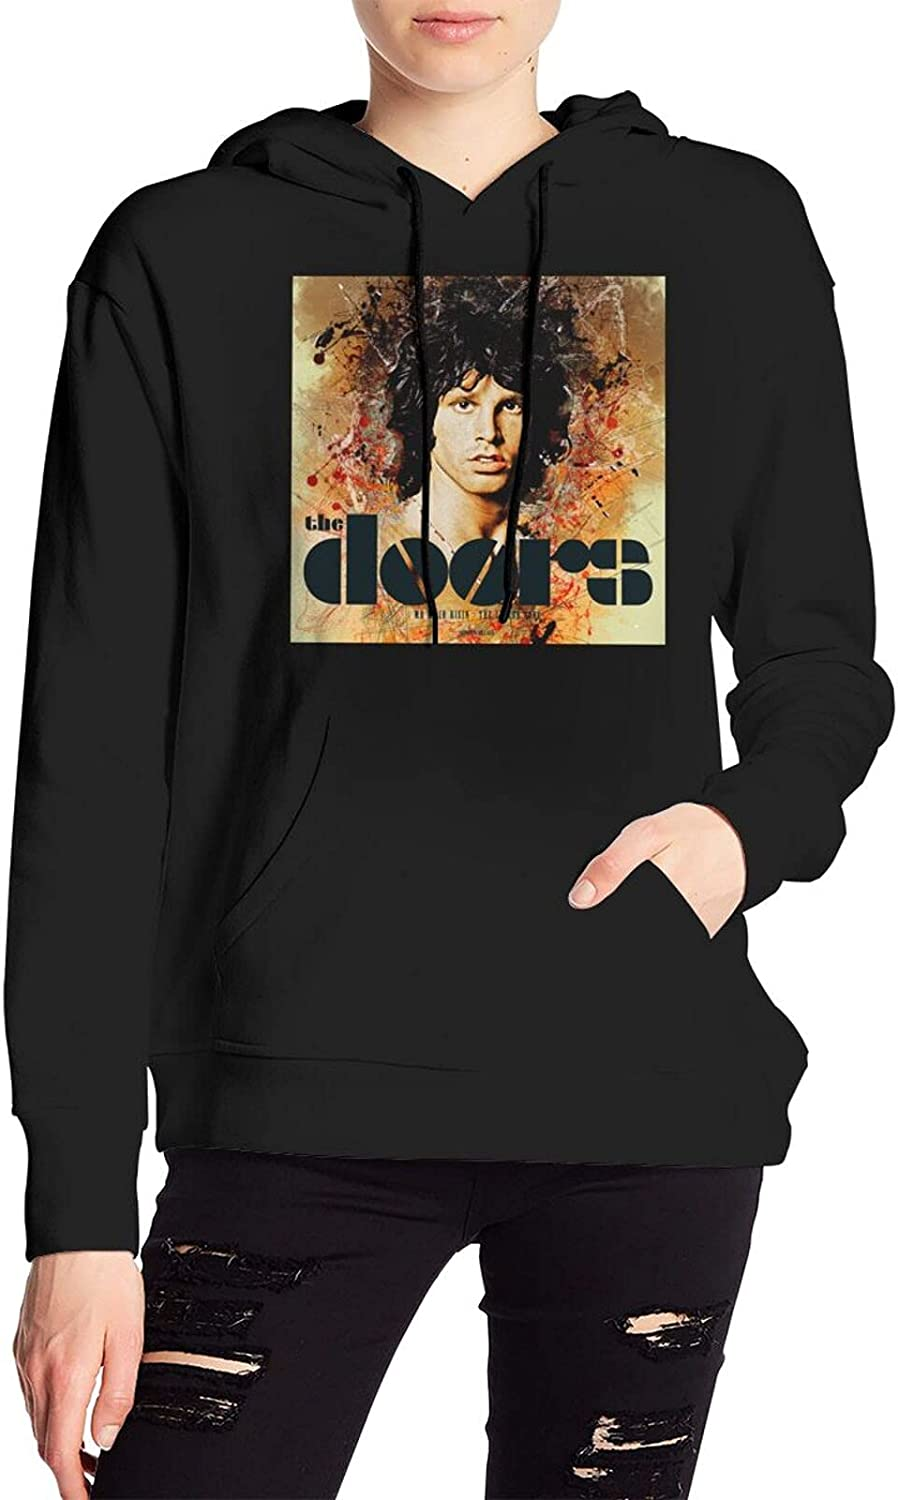 Jim Morrison Village Sweater Fashion Hooded With Pocket For Mens Women